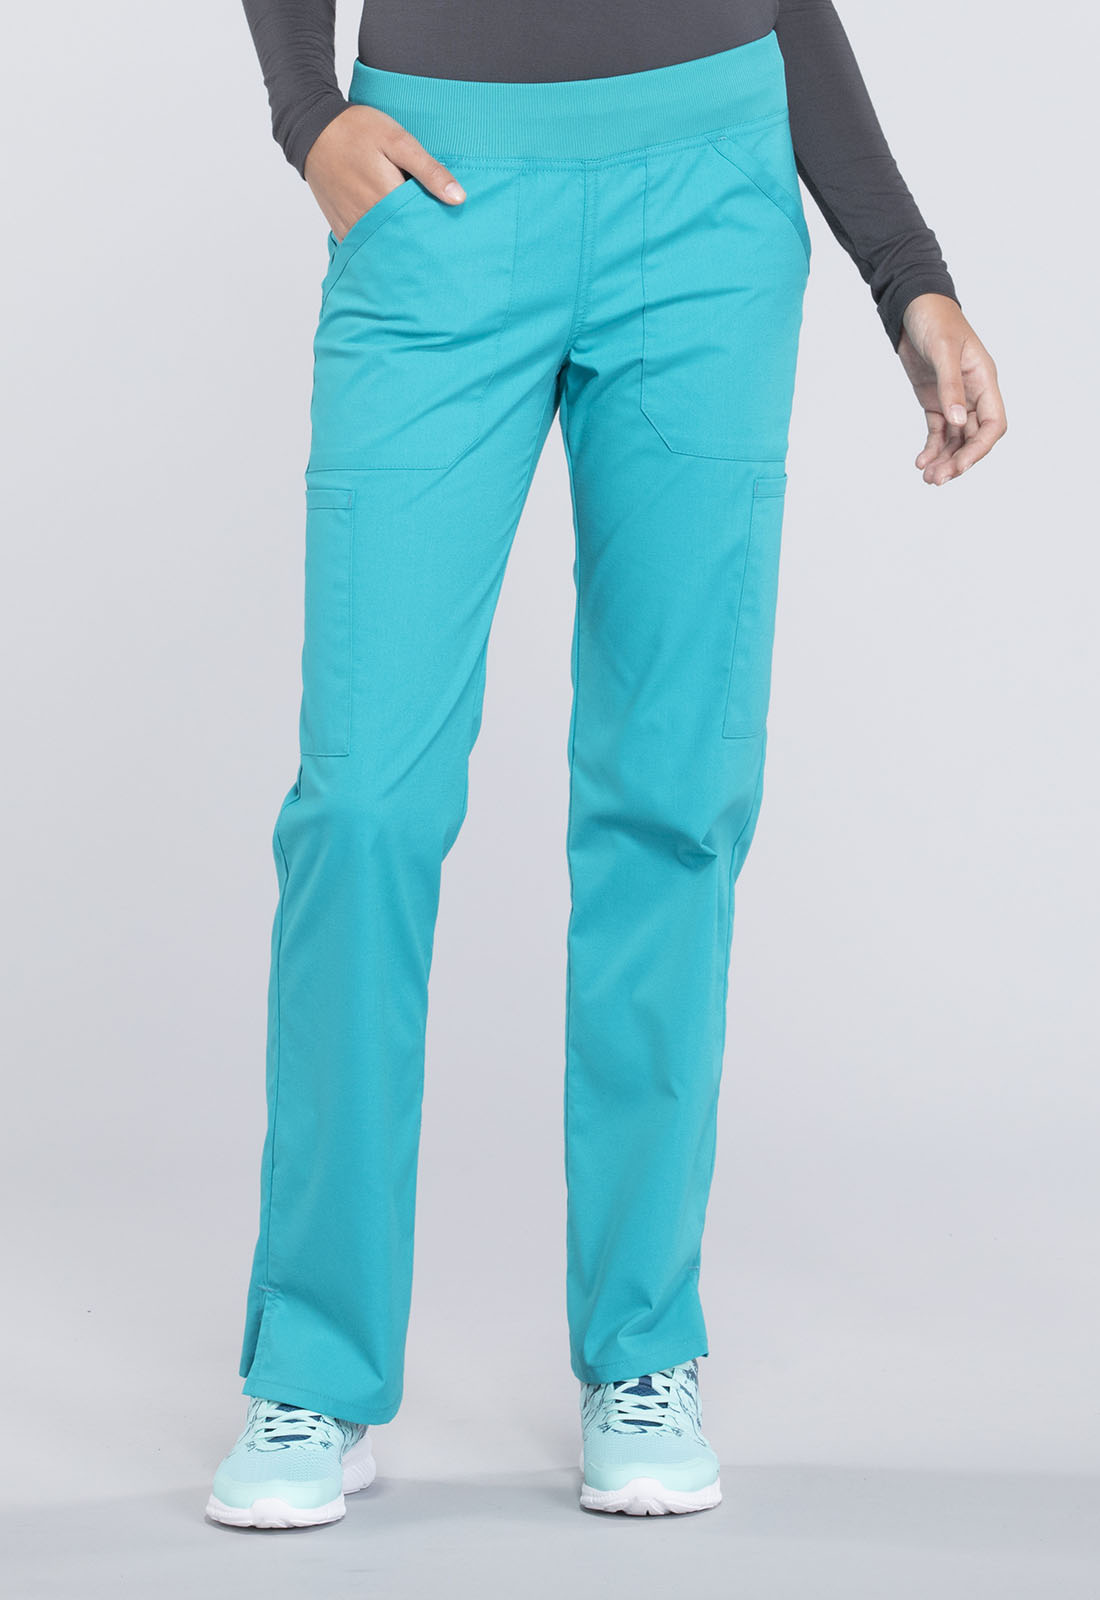 6d0a608586c Cherokee Workwear. WW Professionals Mid Rise Straight Leg Pull-on Cargo Pant  in Teal Blue (Petite)